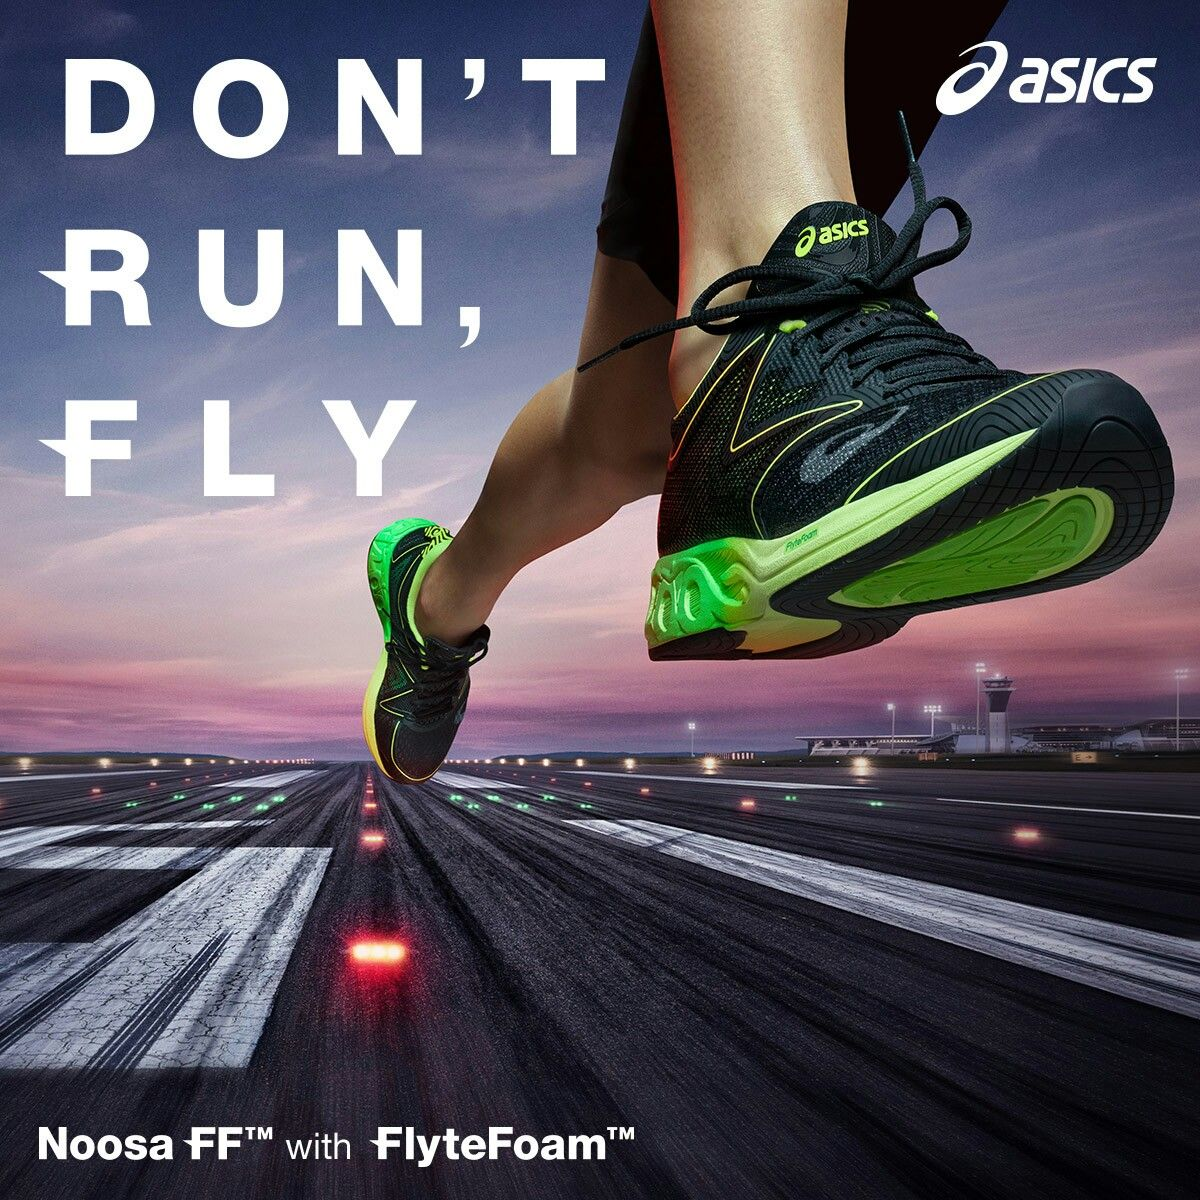 Push your running to the next level with FlyteFoam™ technology – a  superior-cushioned midsole that creates the best lightweight running shoes.